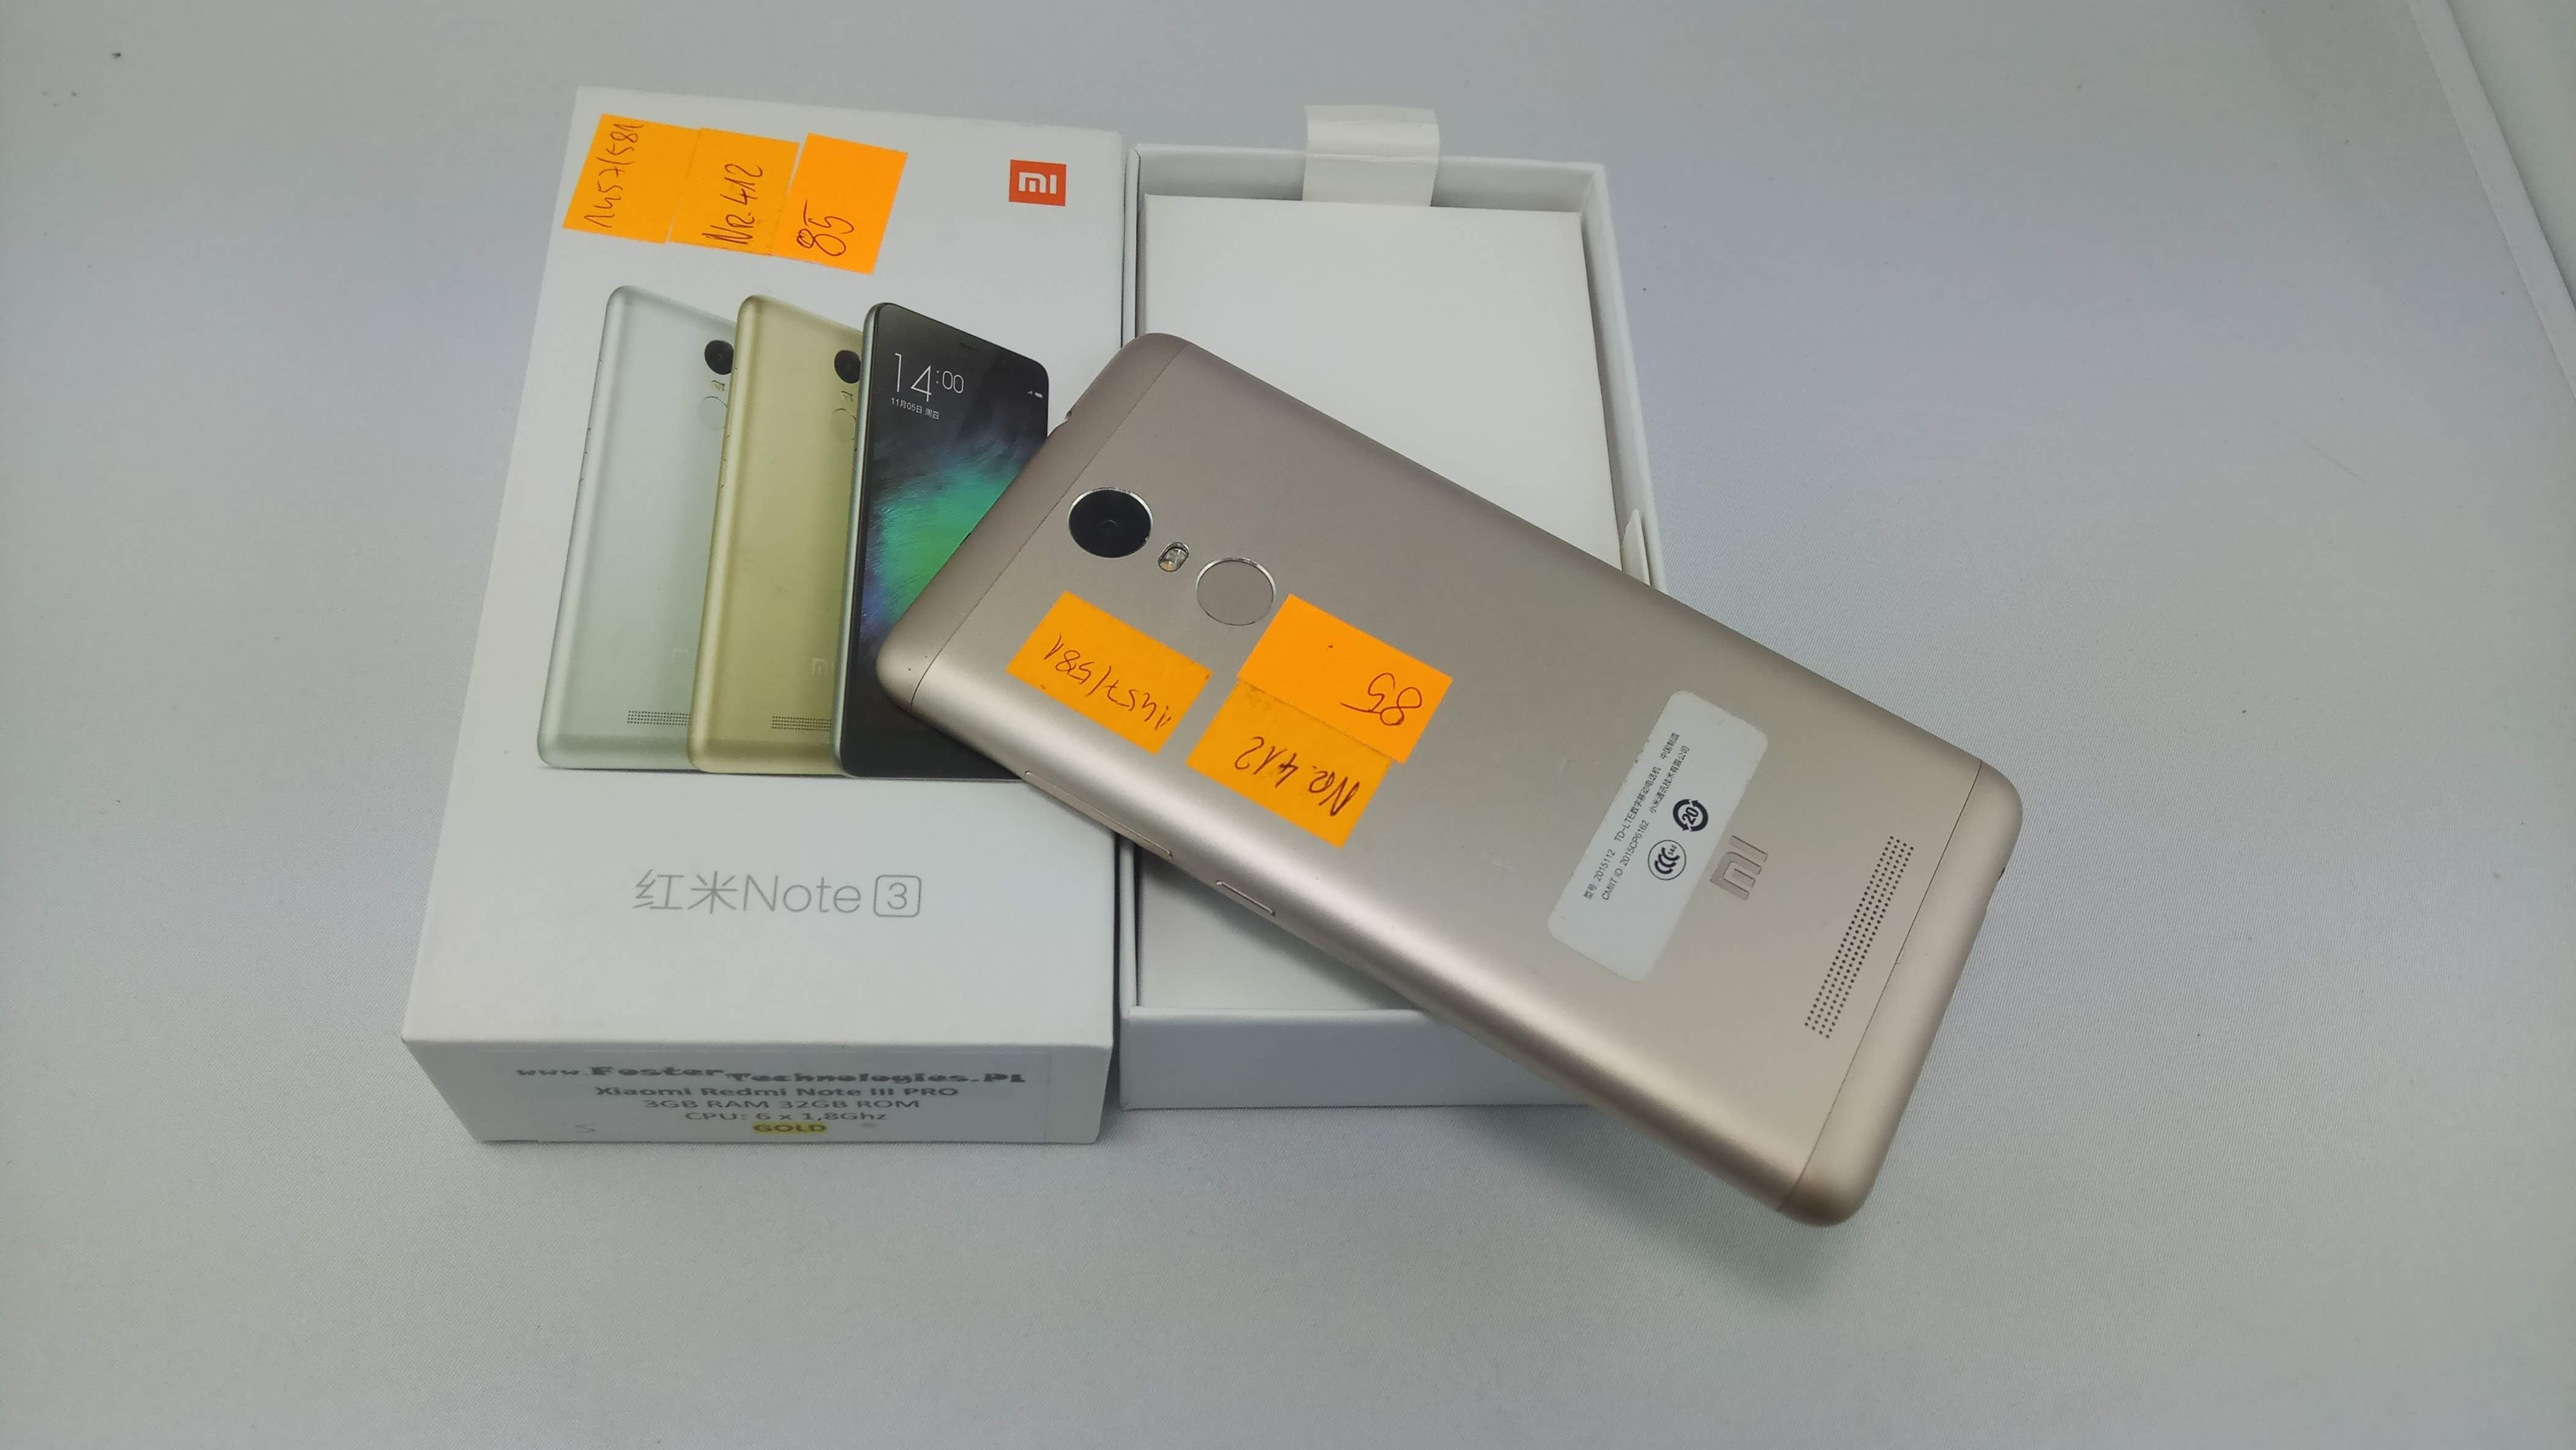 85 Xiaomi Redmi Note 3 Pro 32 Gb Gold Outlet Foster Technologies Img 20180706 192107 192114